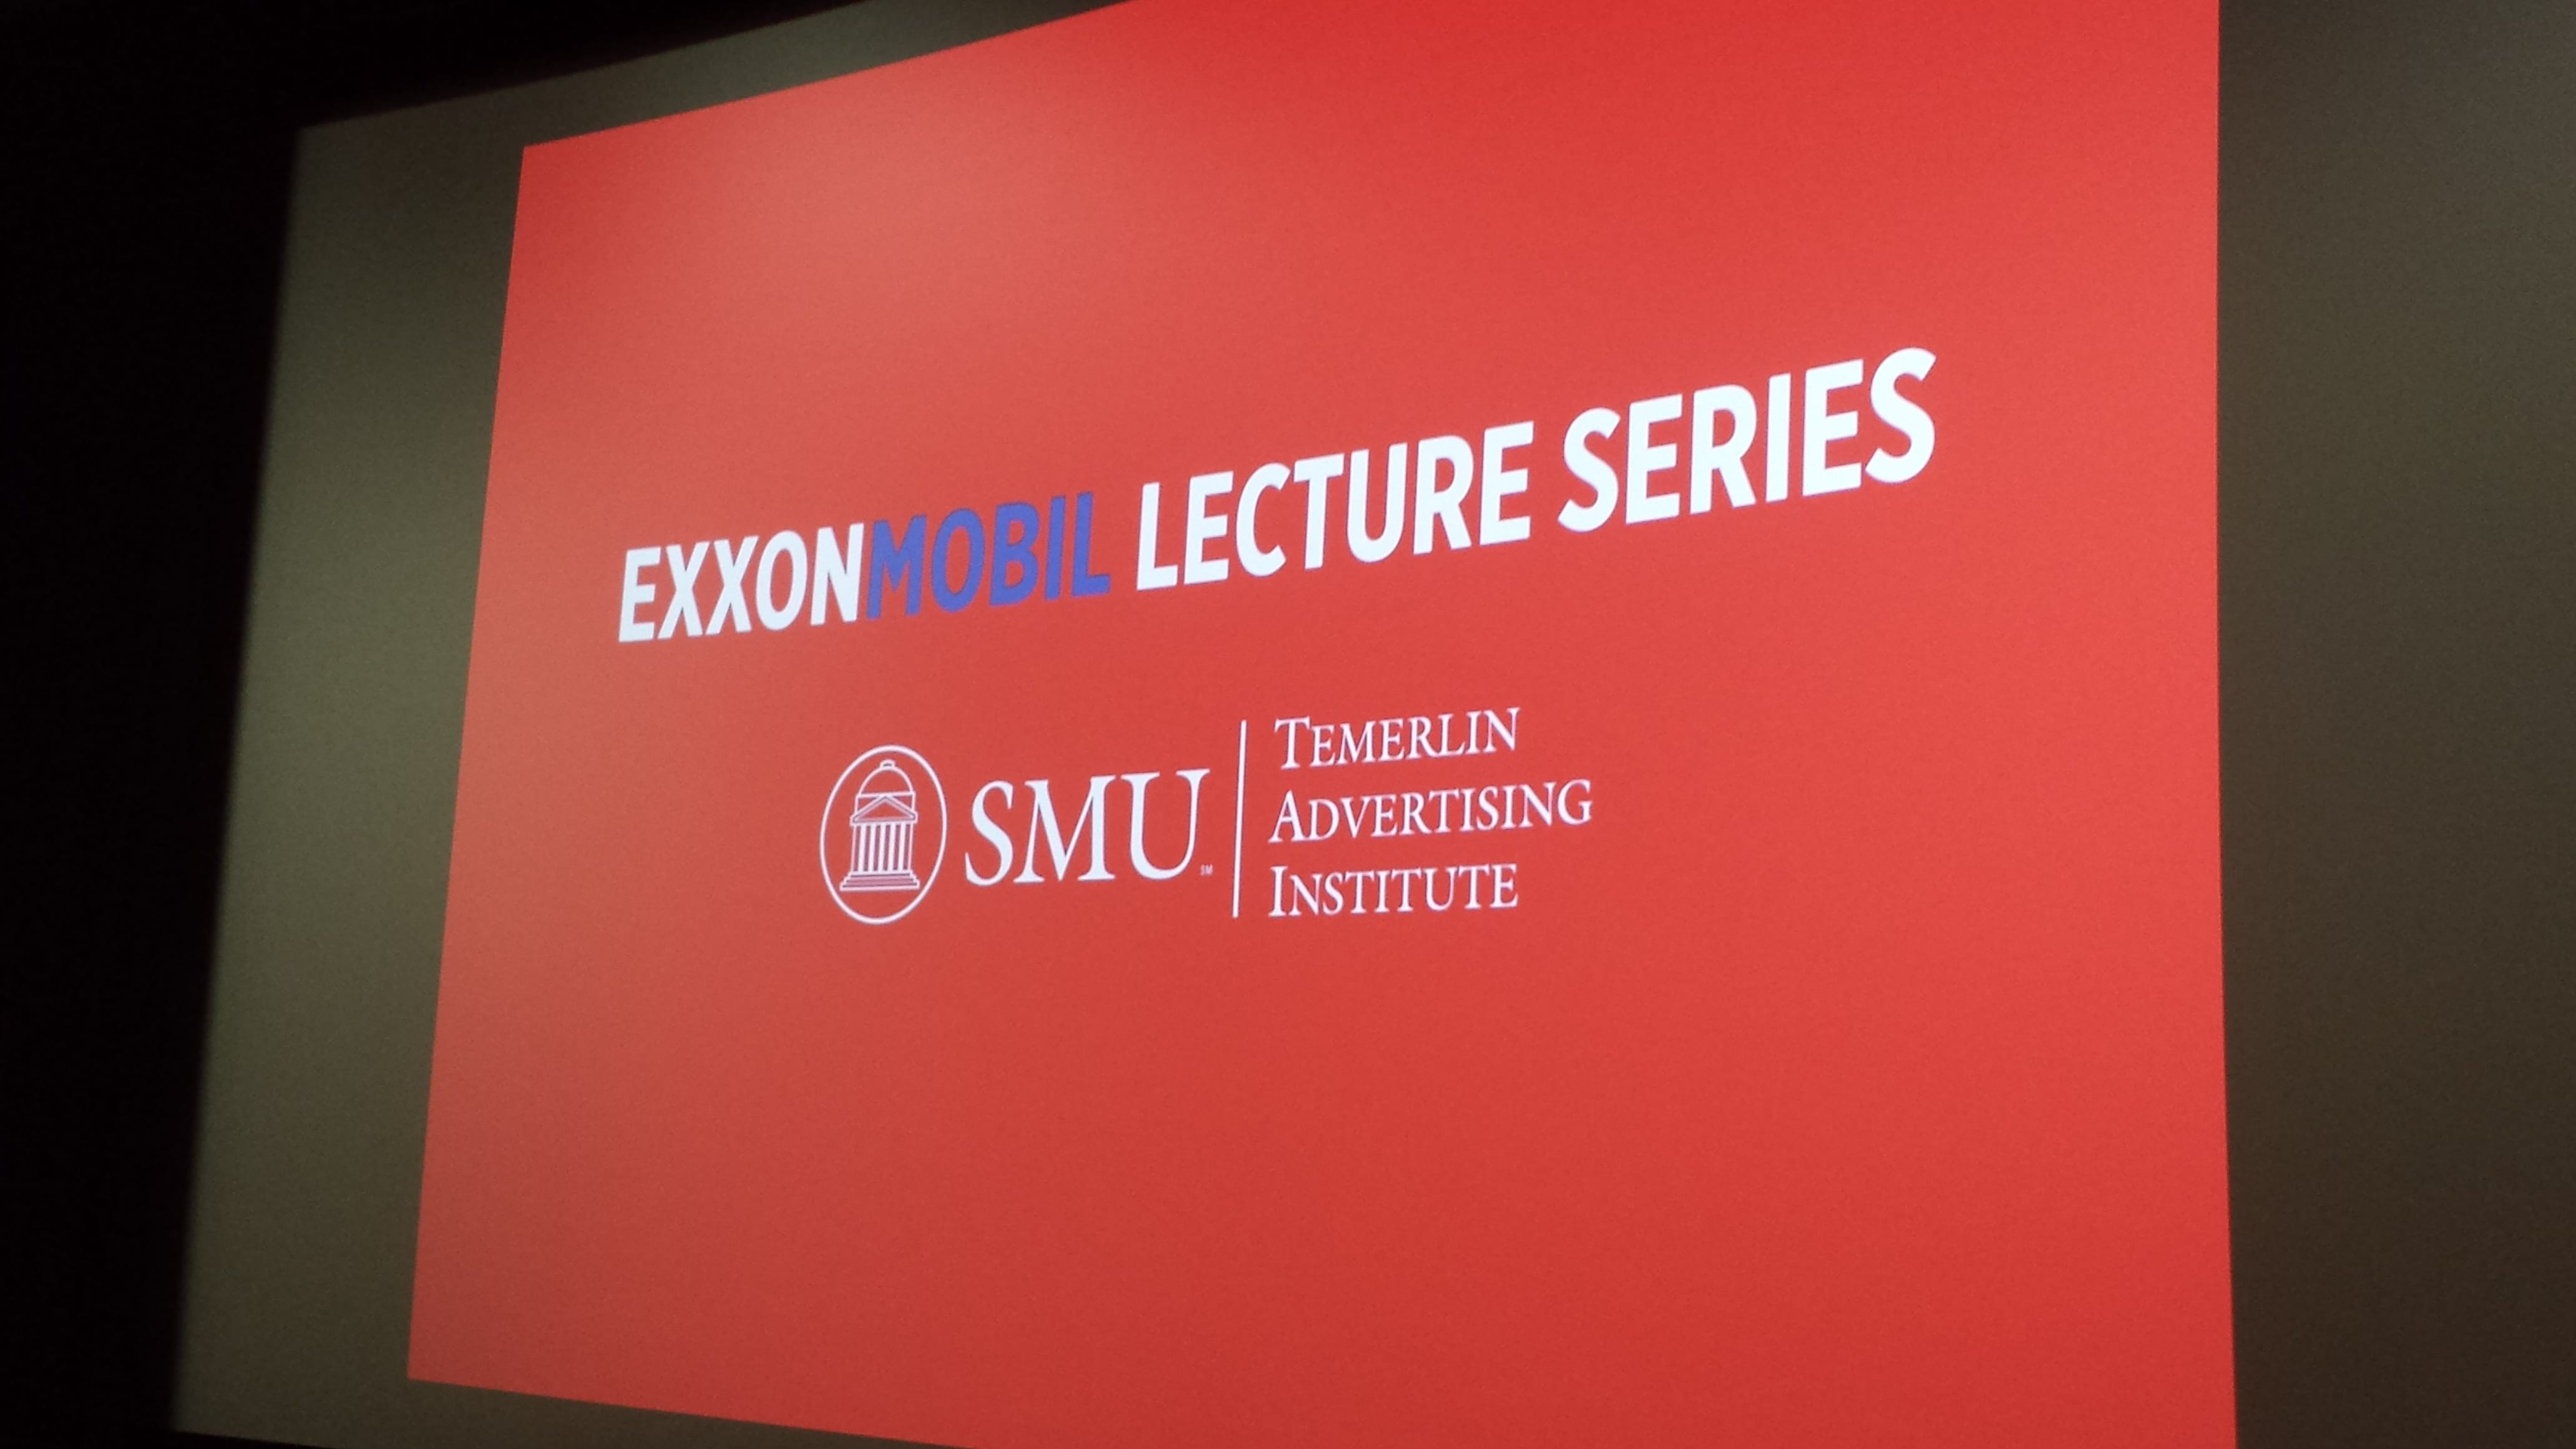 ExxonMobil Lecture Series